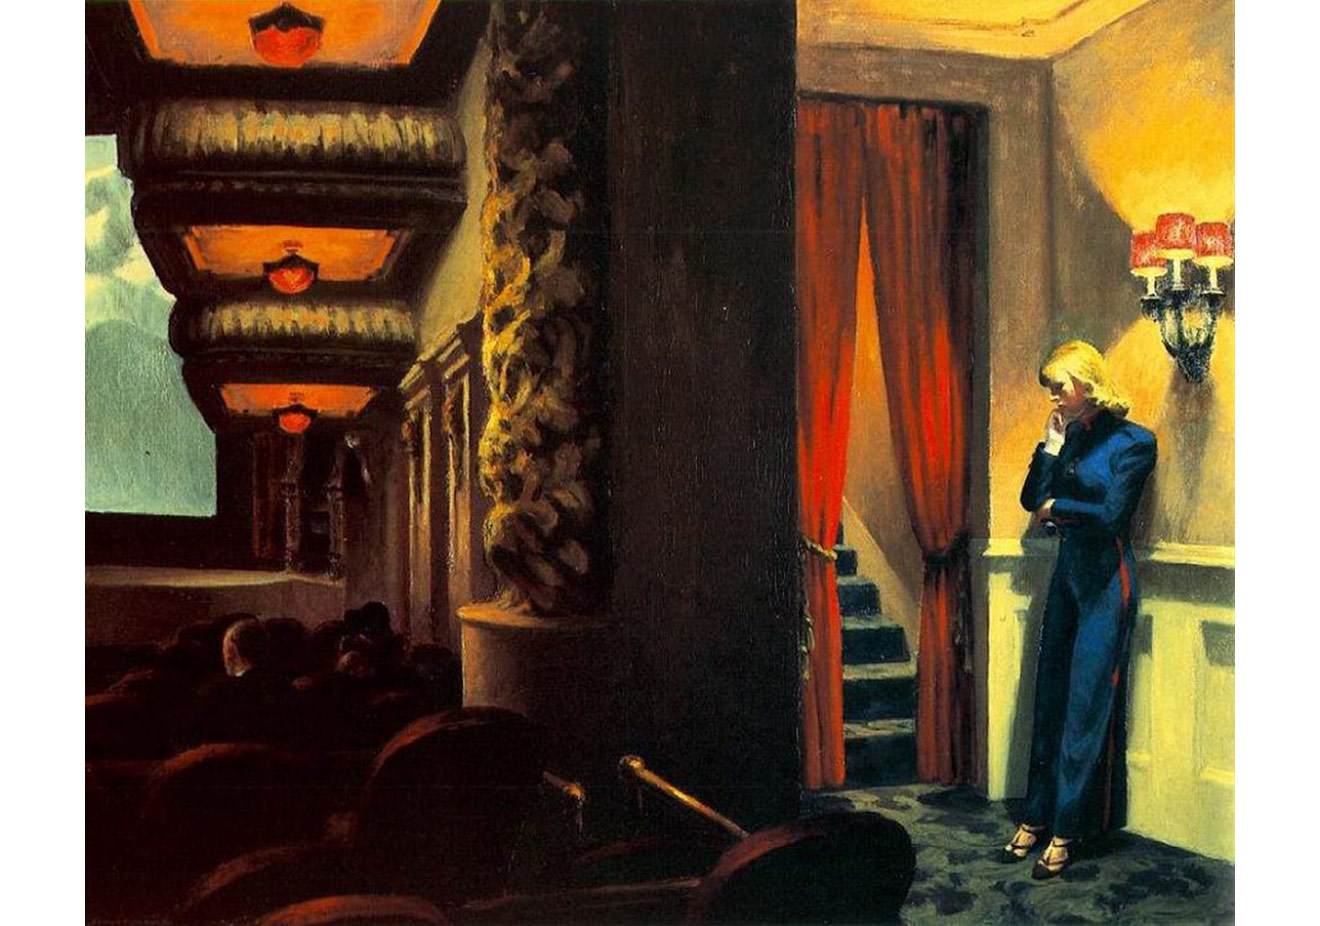 Edward Hopper'ın 1939 yılında yaptığı  'New York Movie' tablosu (http://www.edwardhopper.net/newyork-movie.jsp)